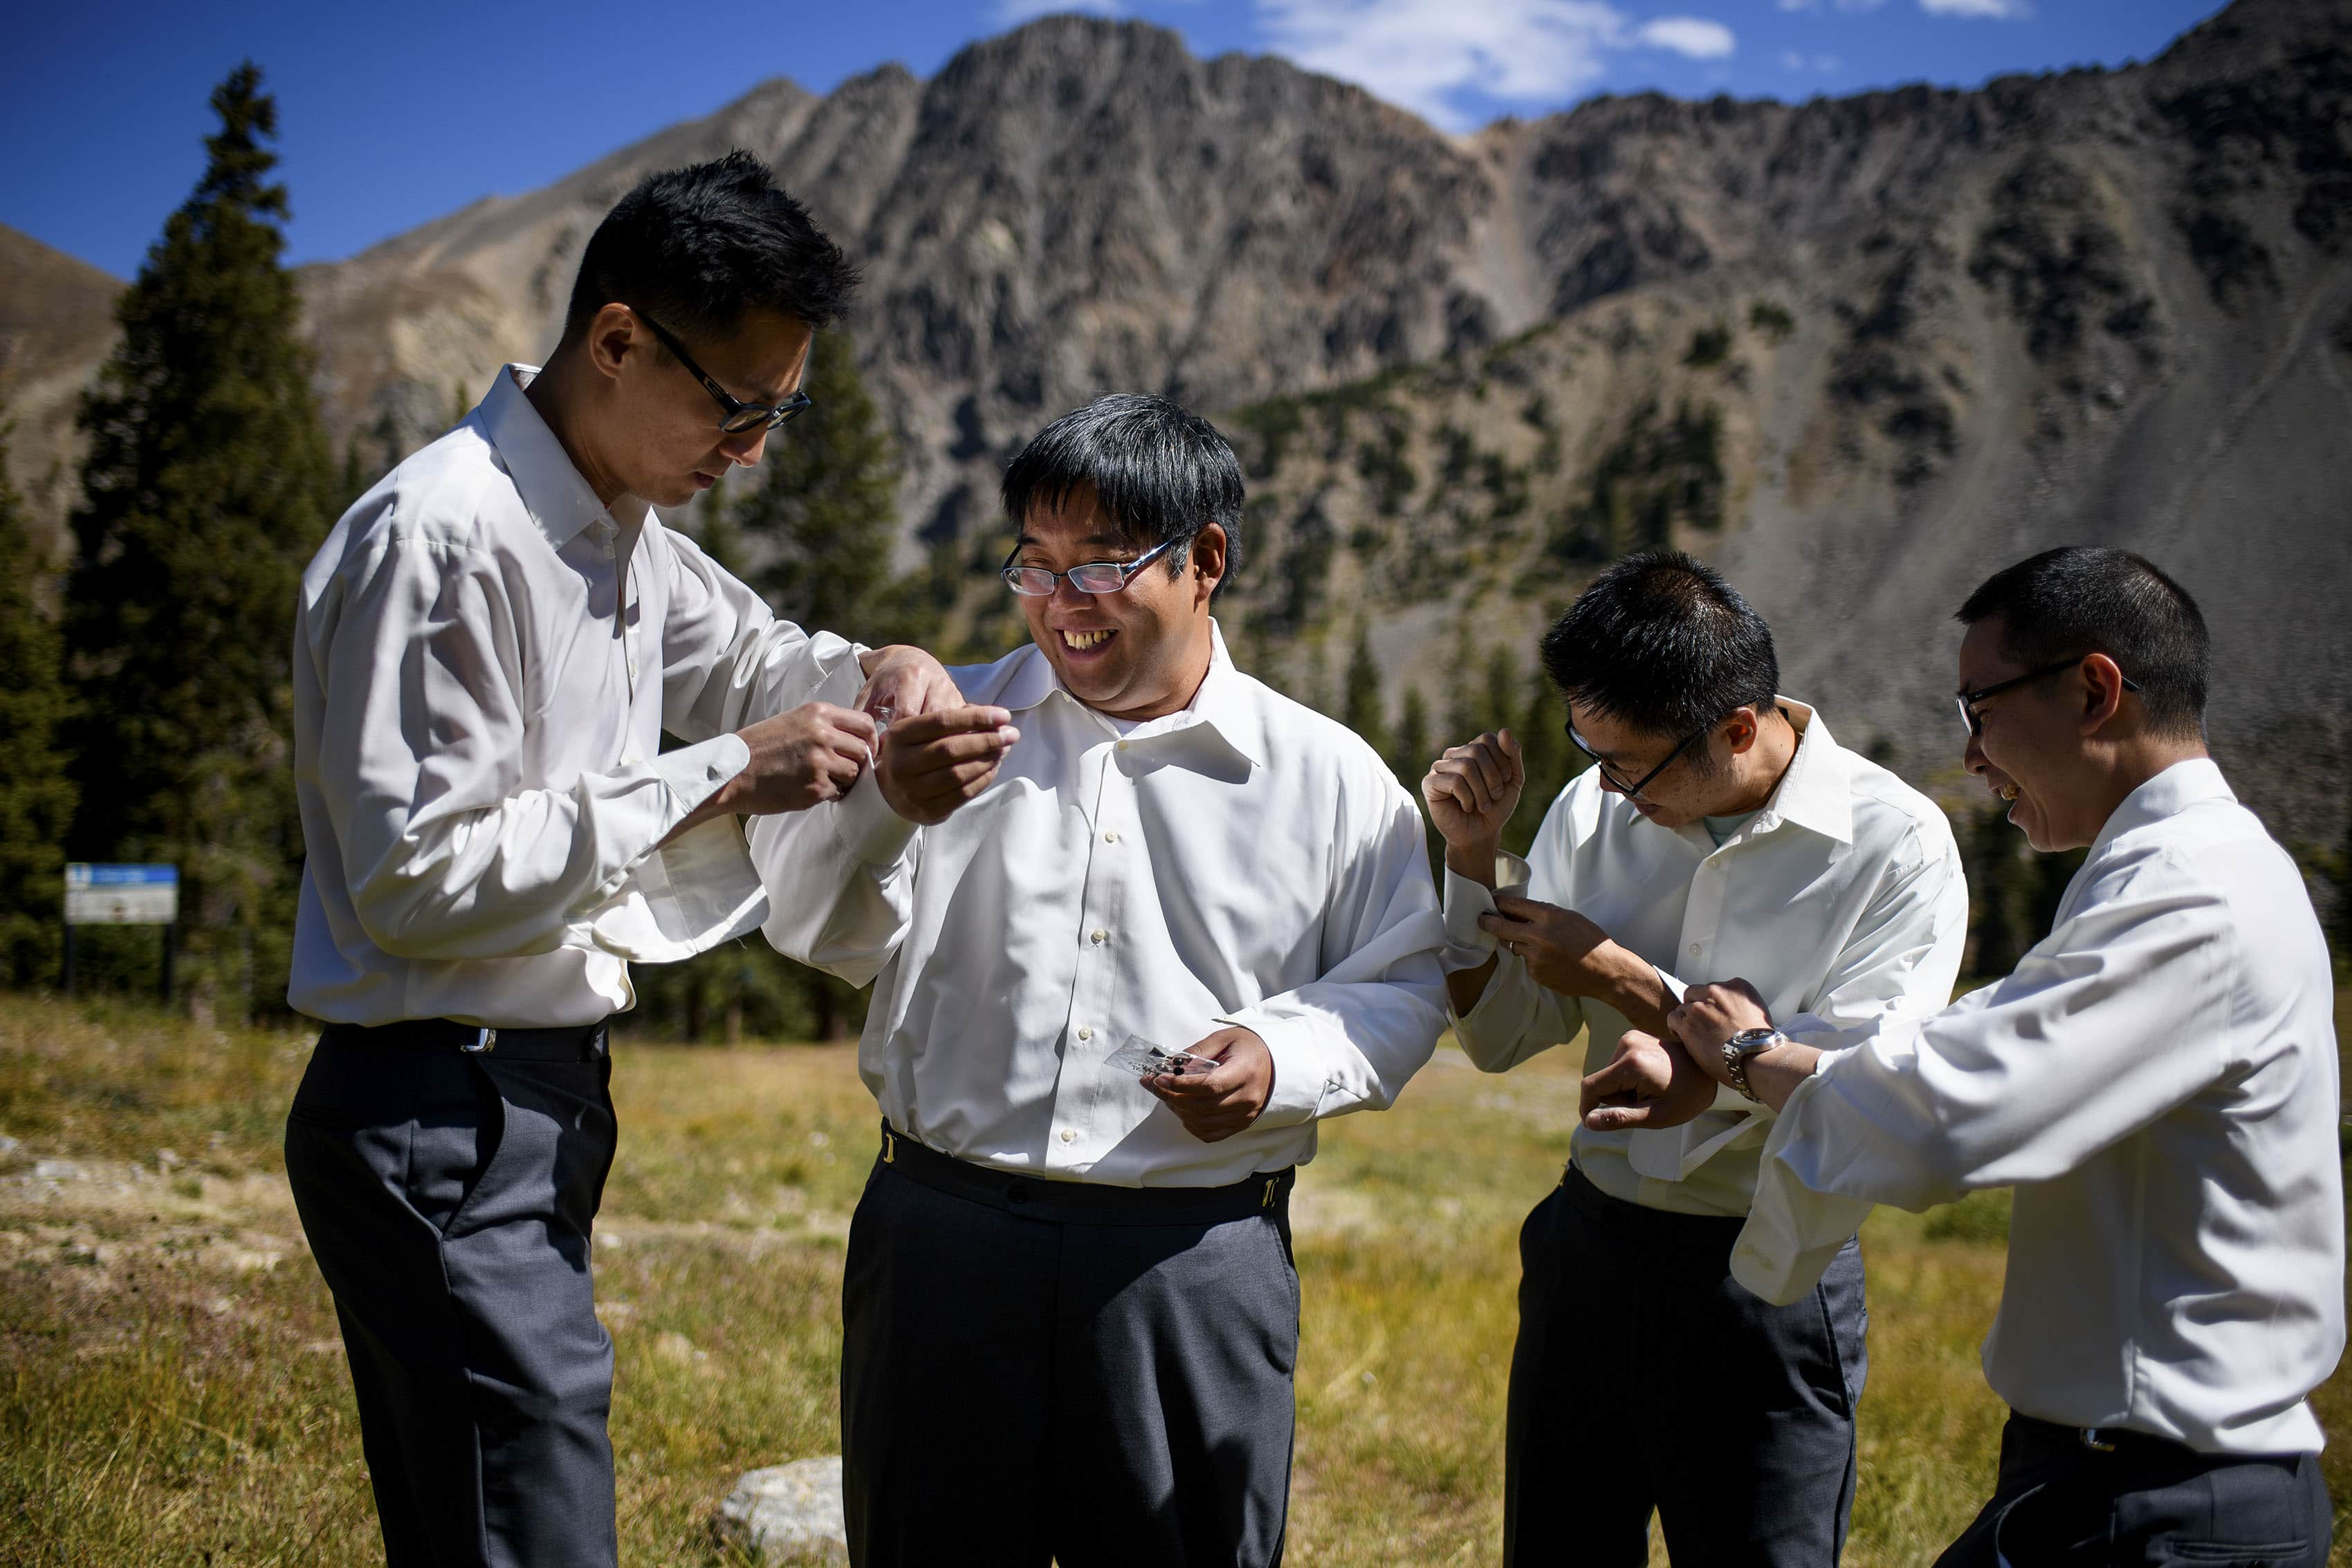 David gets dressed with his groomsmen outside at Black Mountain Lodge at Arapahoe Basin on his wedding day